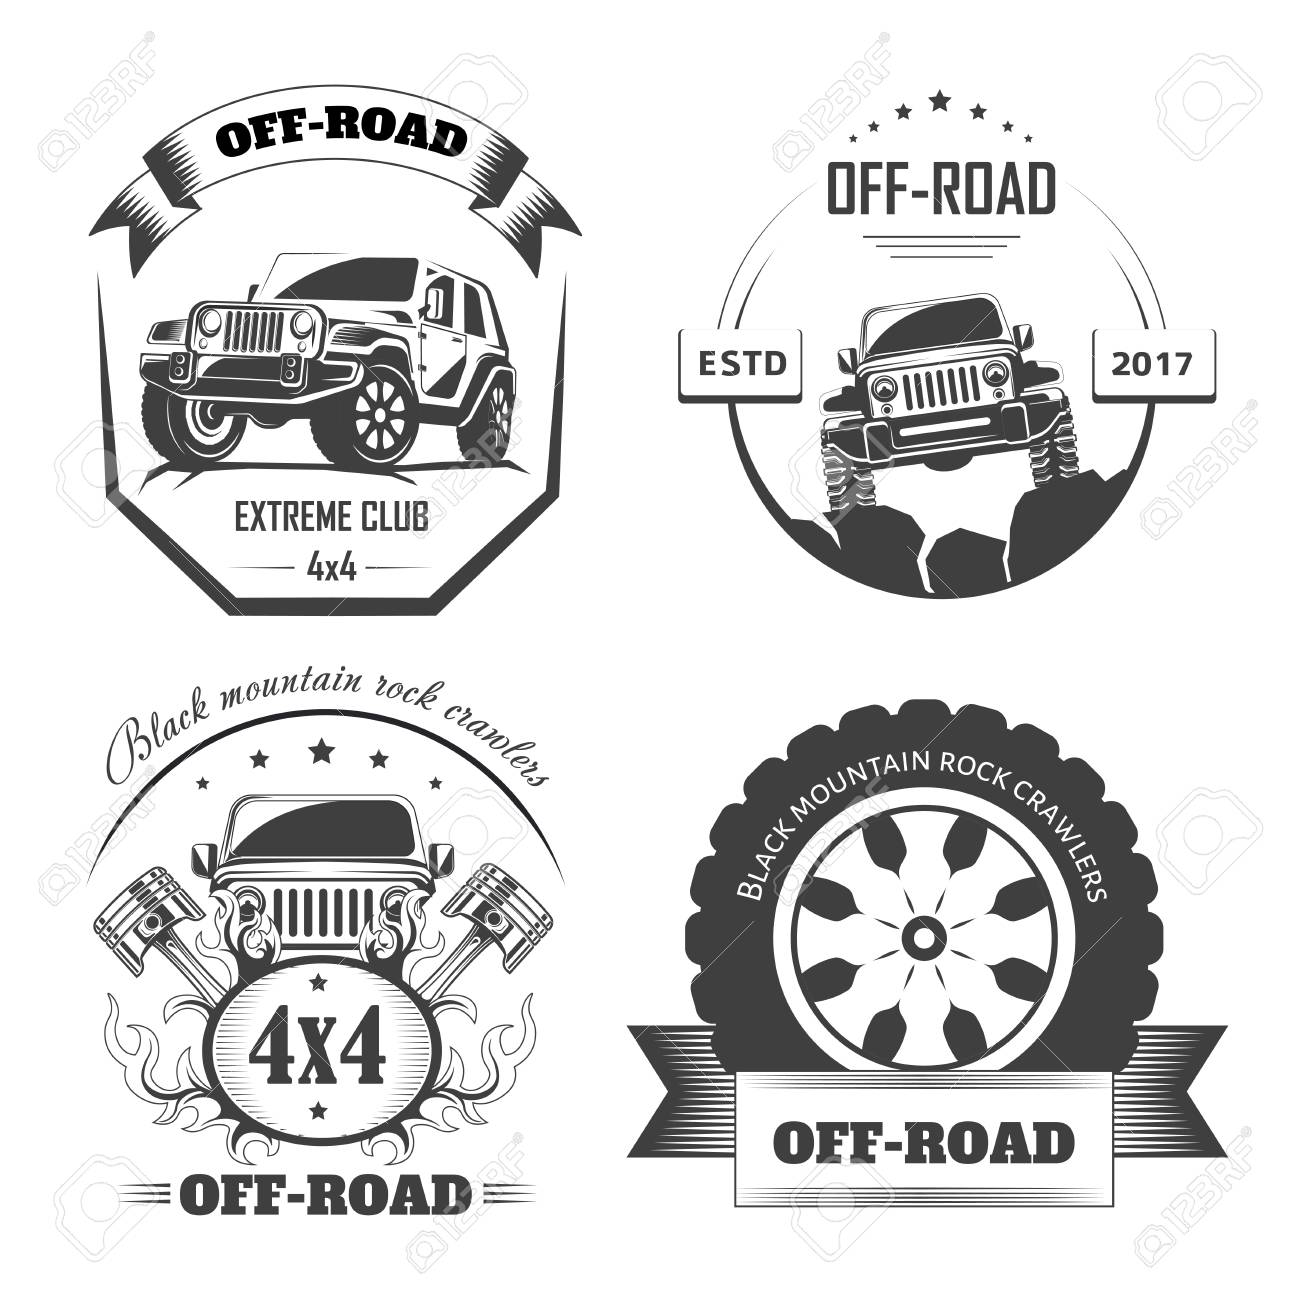 Off Road 4x4 Extreme Car Club Logo Templates For Design Projects Royalty Free Cliparts Vectors And Stock Illustration Image 111124374